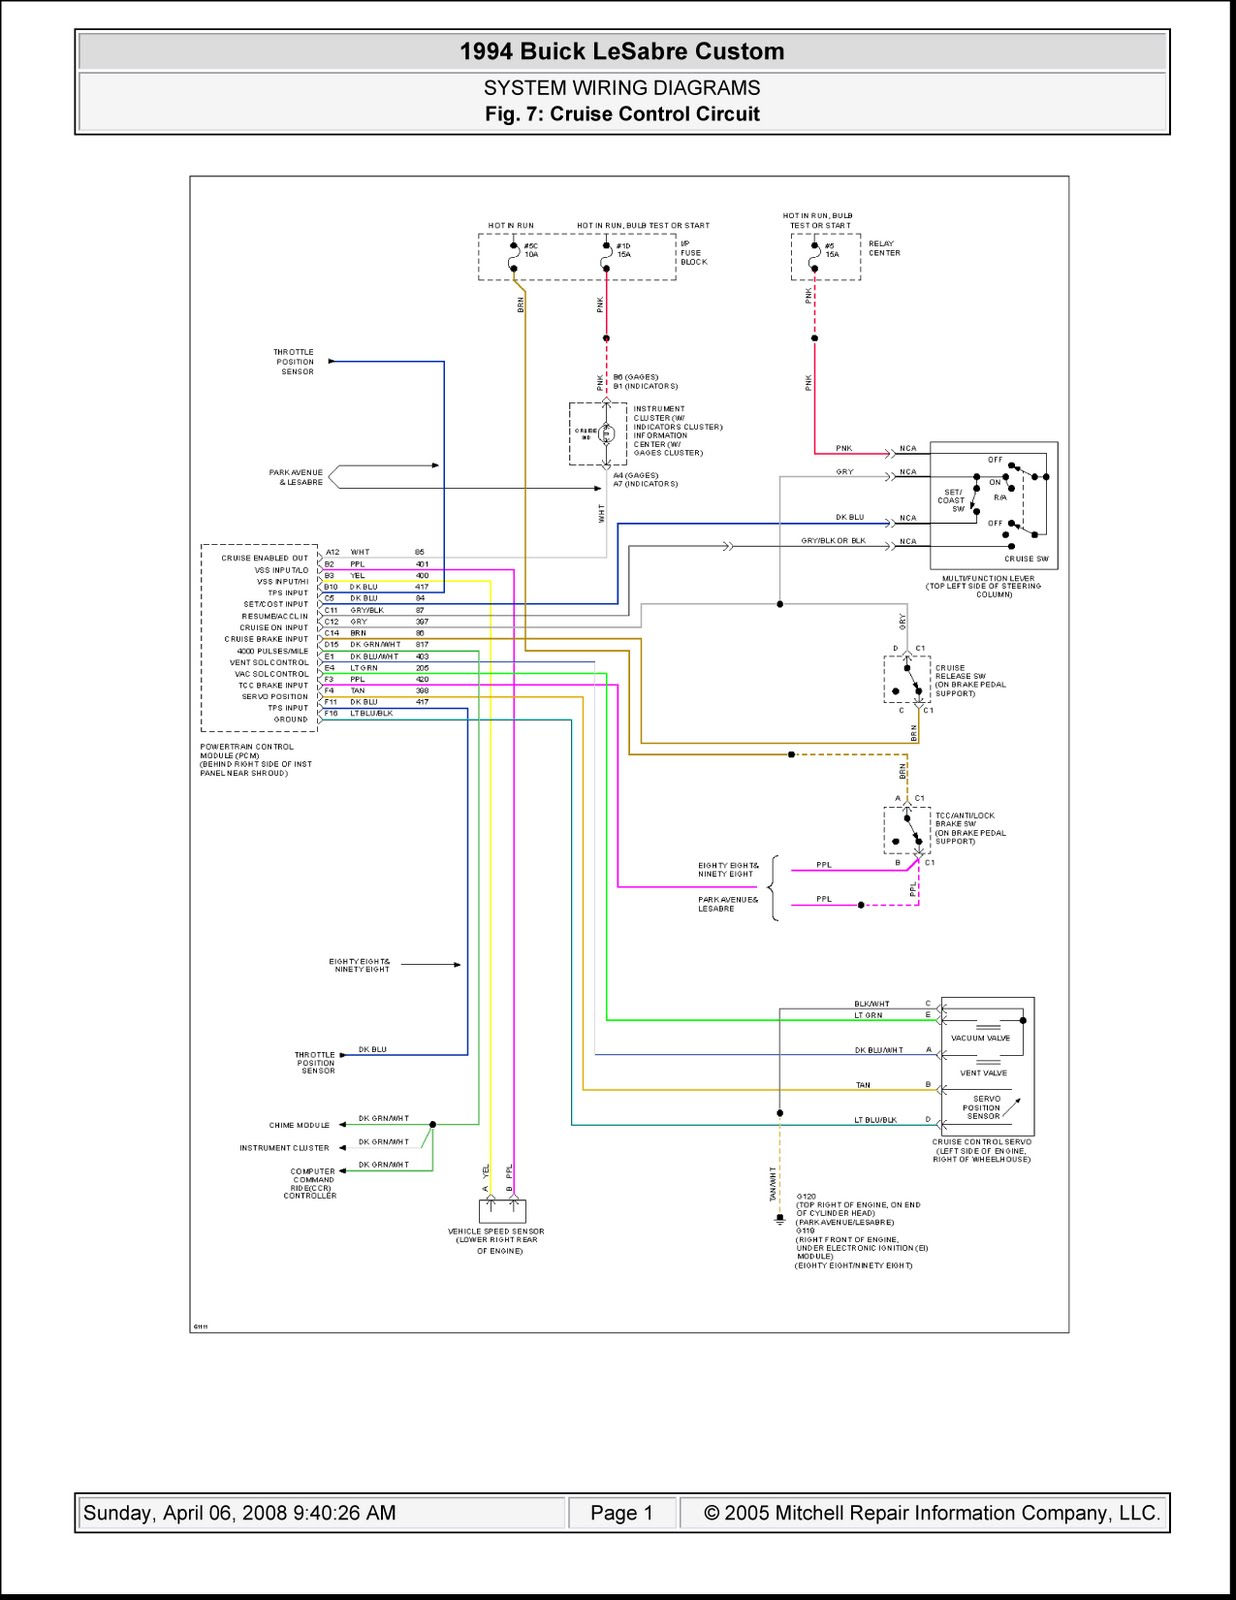 medium resolution of buick cruise control diagram wiring diagram yer buick cruise control diagram